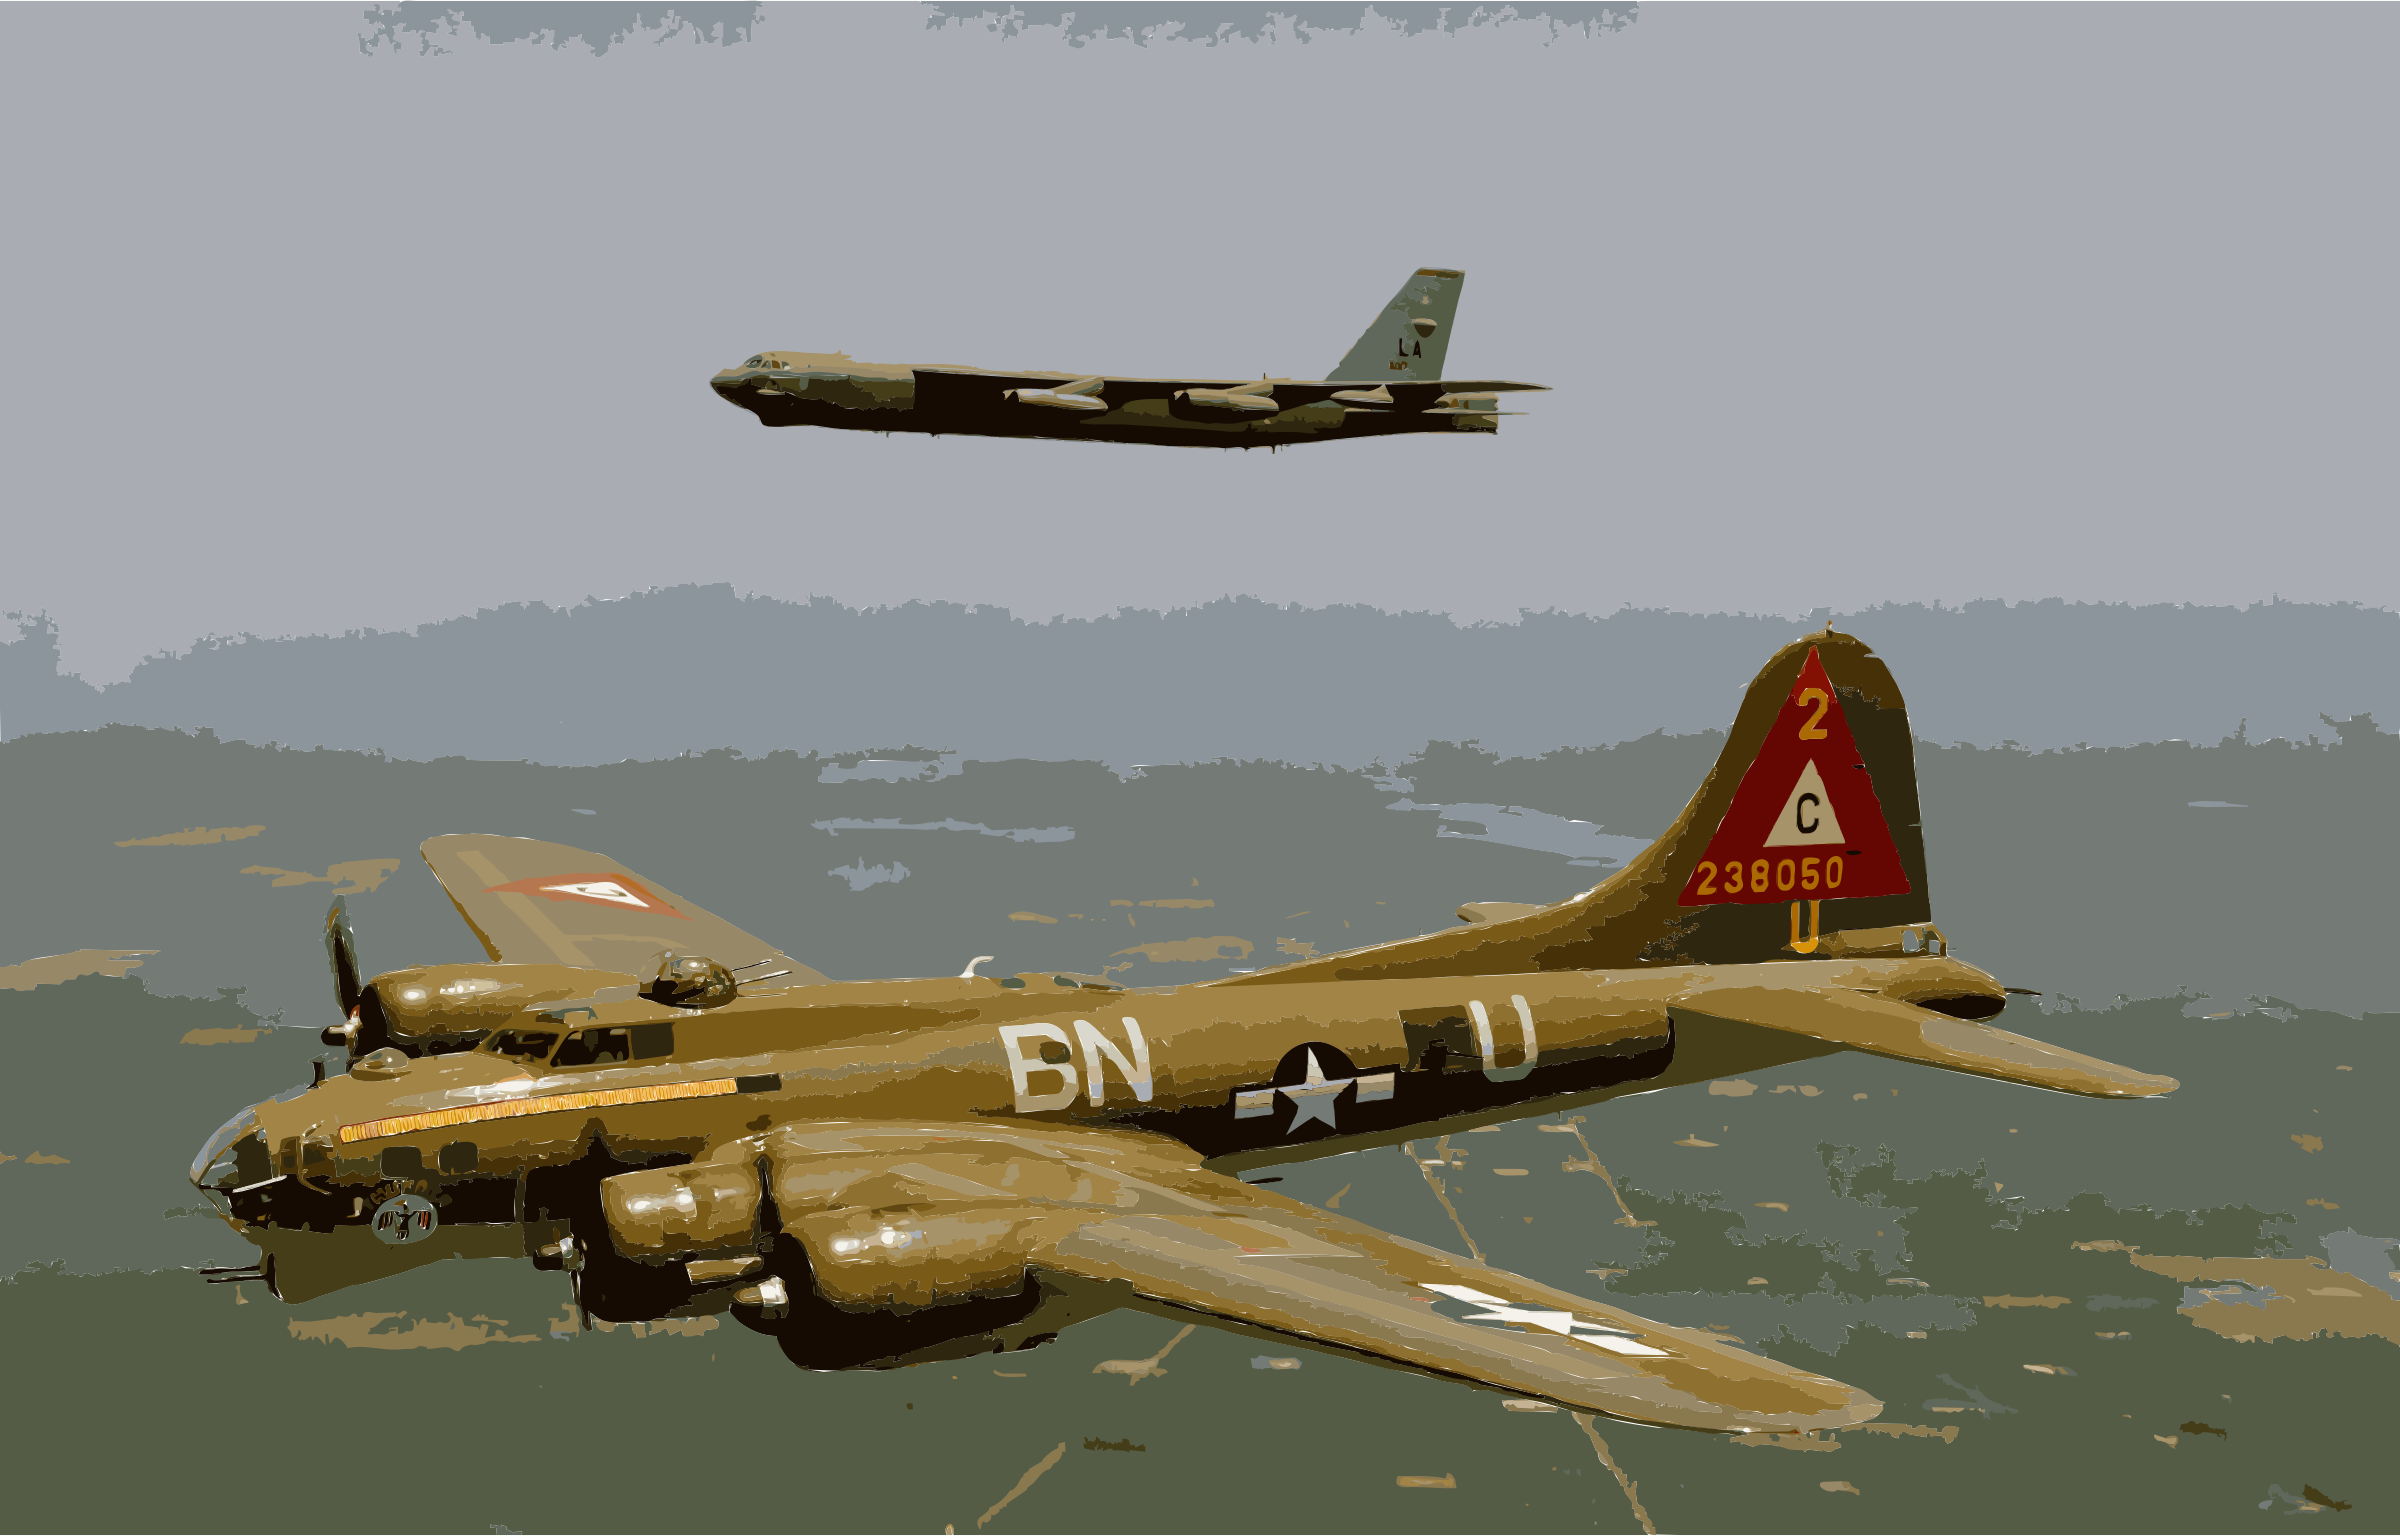 B17g and b52h in flight by 3w8x8j+ekad9if2mkux4